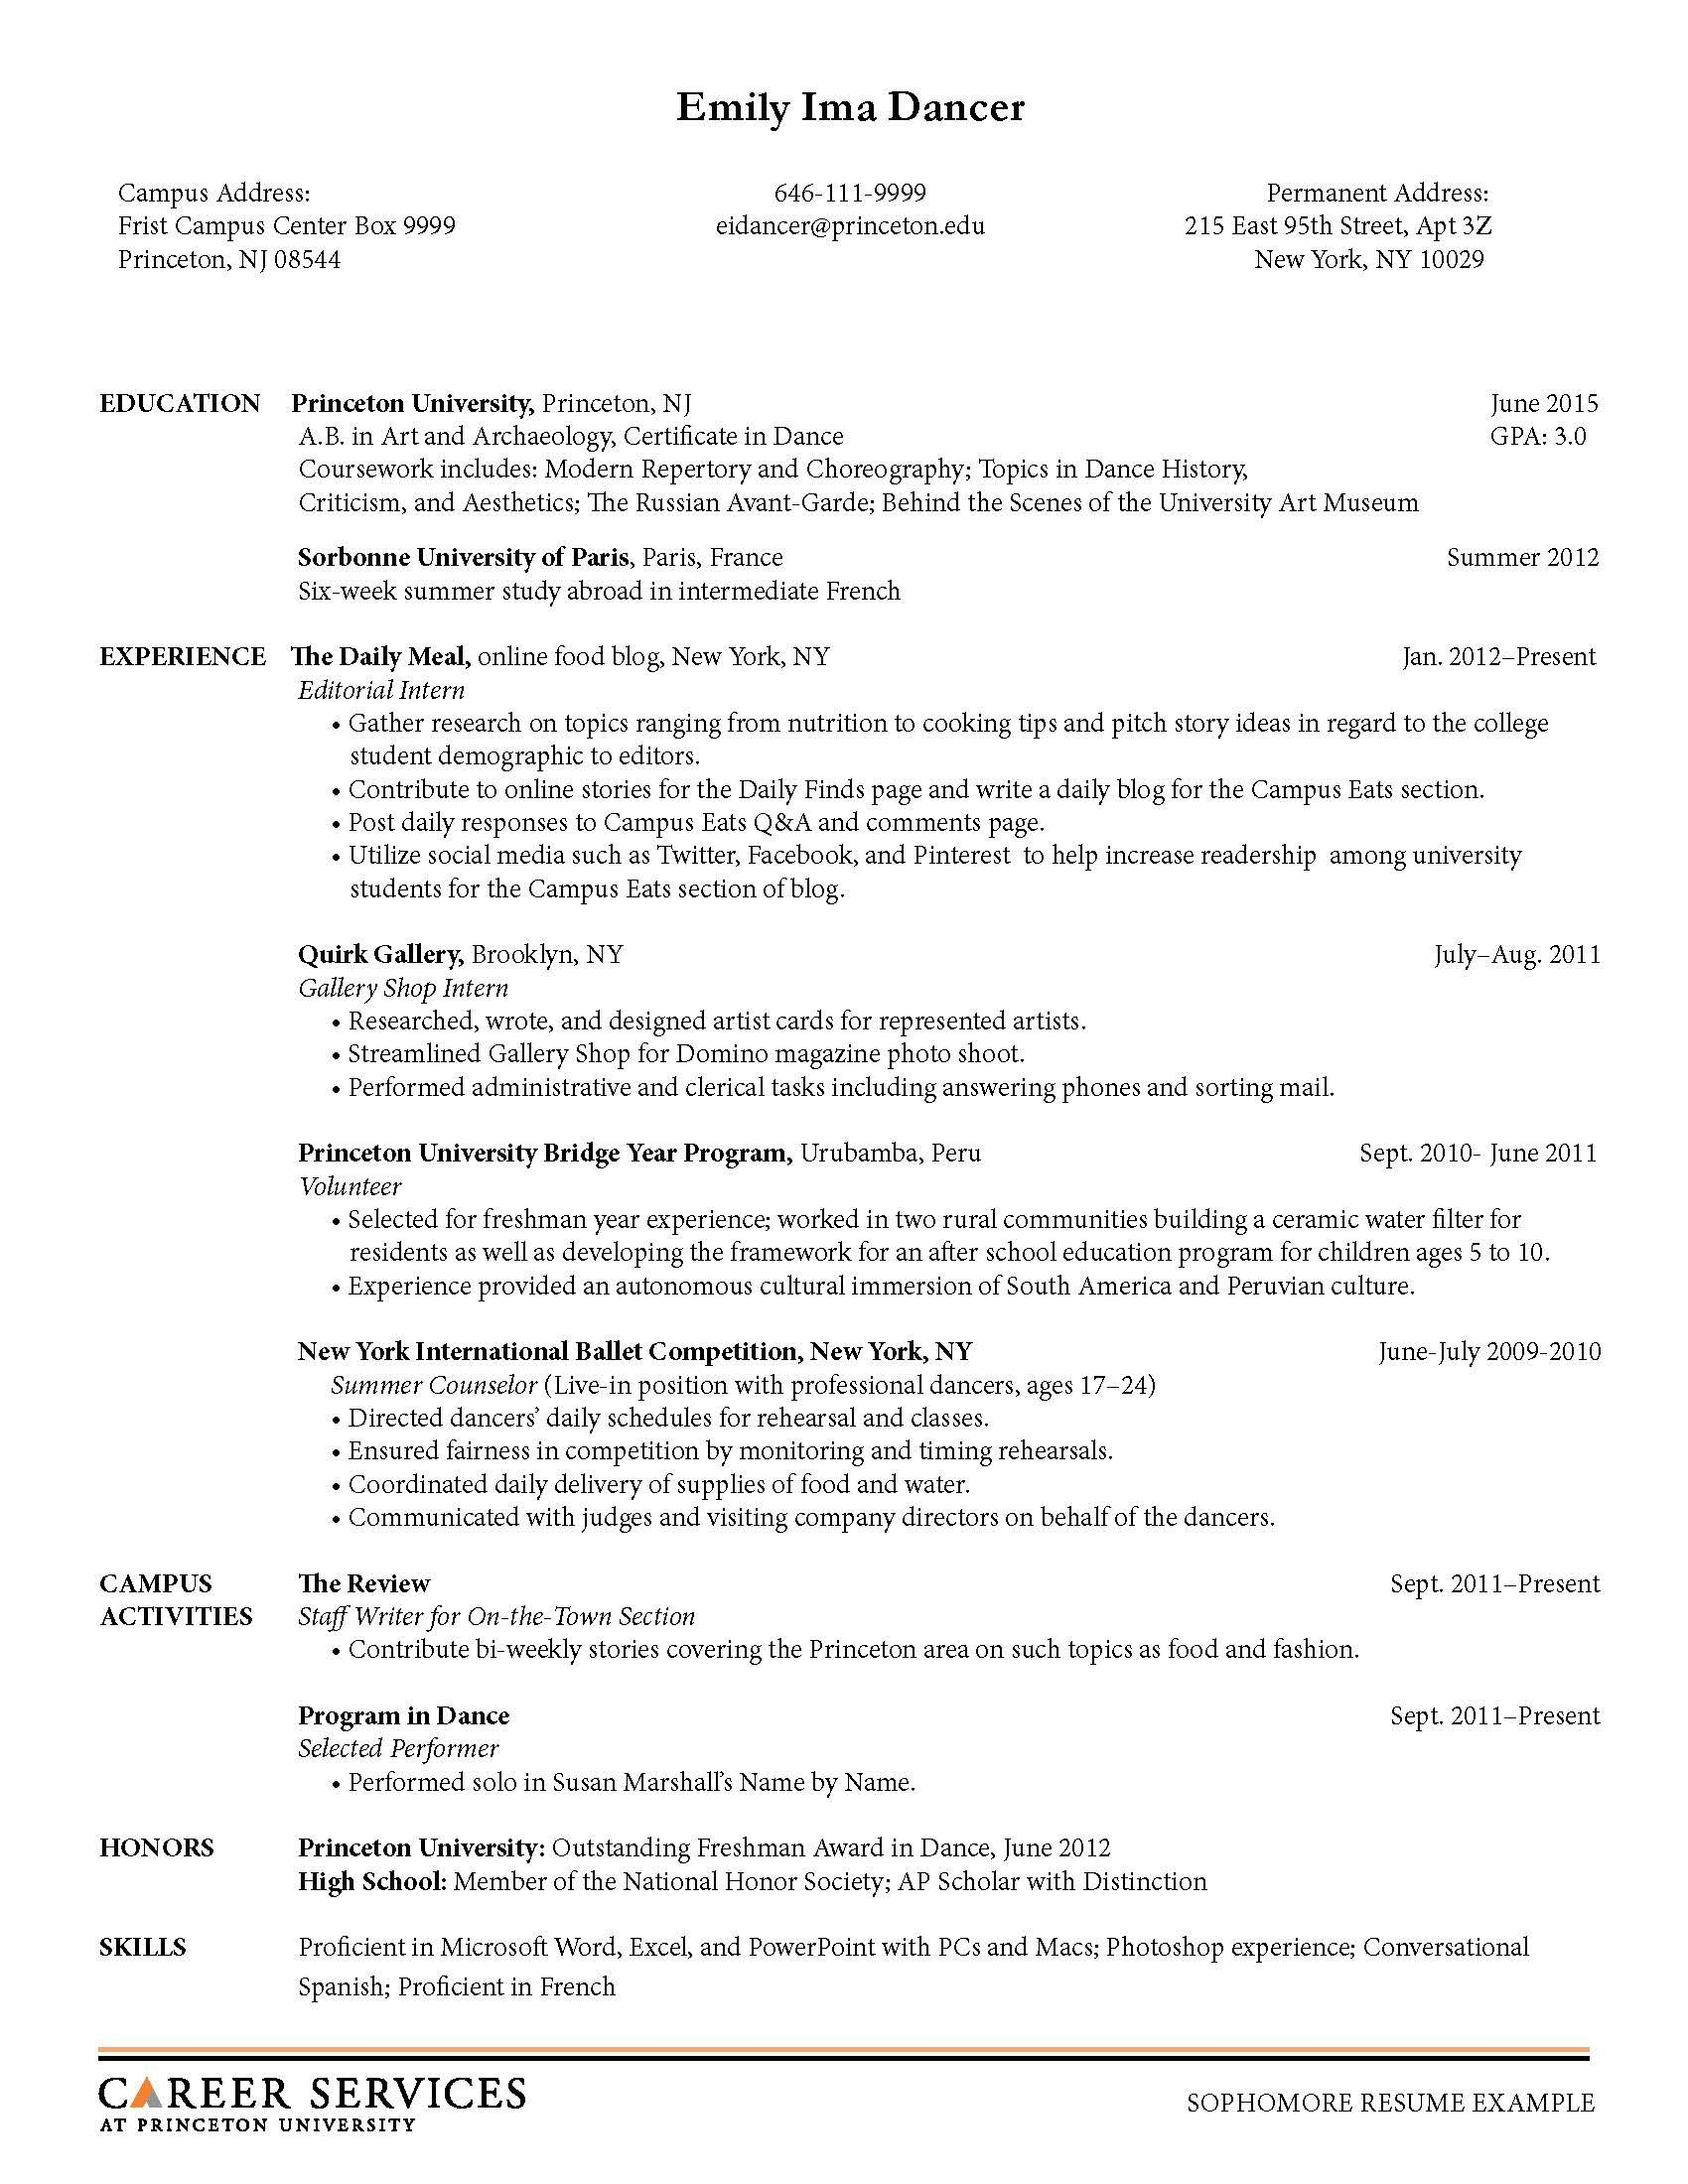 Opposenewapstandardsus  Mesmerizing Sample Resume Resume And Career On Pinterest With Heavenly Where Can I Get A Resume Made Besides Resume Format On Word Furthermore How To Write A Resume Letter With Beautiful Screenwriter Resume Also Resume Example For Customer Service In Addition High School Grad Resume And Resume With No Education As Well As Resume Skills Customer Service Additionally Sr Business Analyst Resume From Pinterestcom With Opposenewapstandardsus  Heavenly Sample Resume Resume And Career On Pinterest With Beautiful Where Can I Get A Resume Made Besides Resume Format On Word Furthermore How To Write A Resume Letter And Mesmerizing Screenwriter Resume Also Resume Example For Customer Service In Addition High School Grad Resume From Pinterestcom